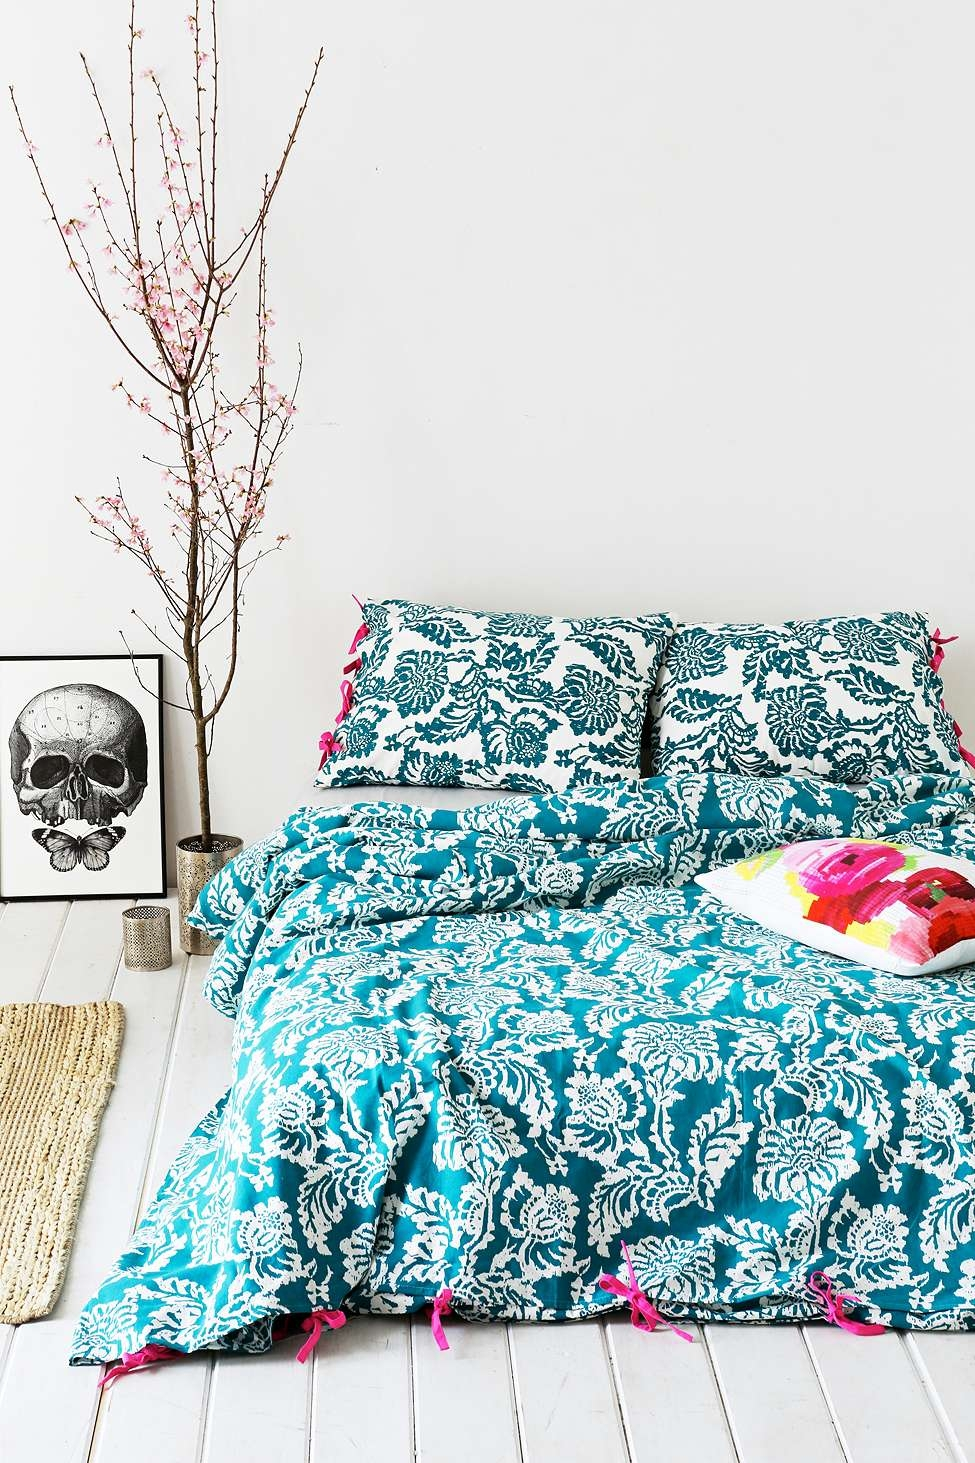 housse de couette grand lit bleue imprim urban outfitters pickture. Black Bedroom Furniture Sets. Home Design Ideas